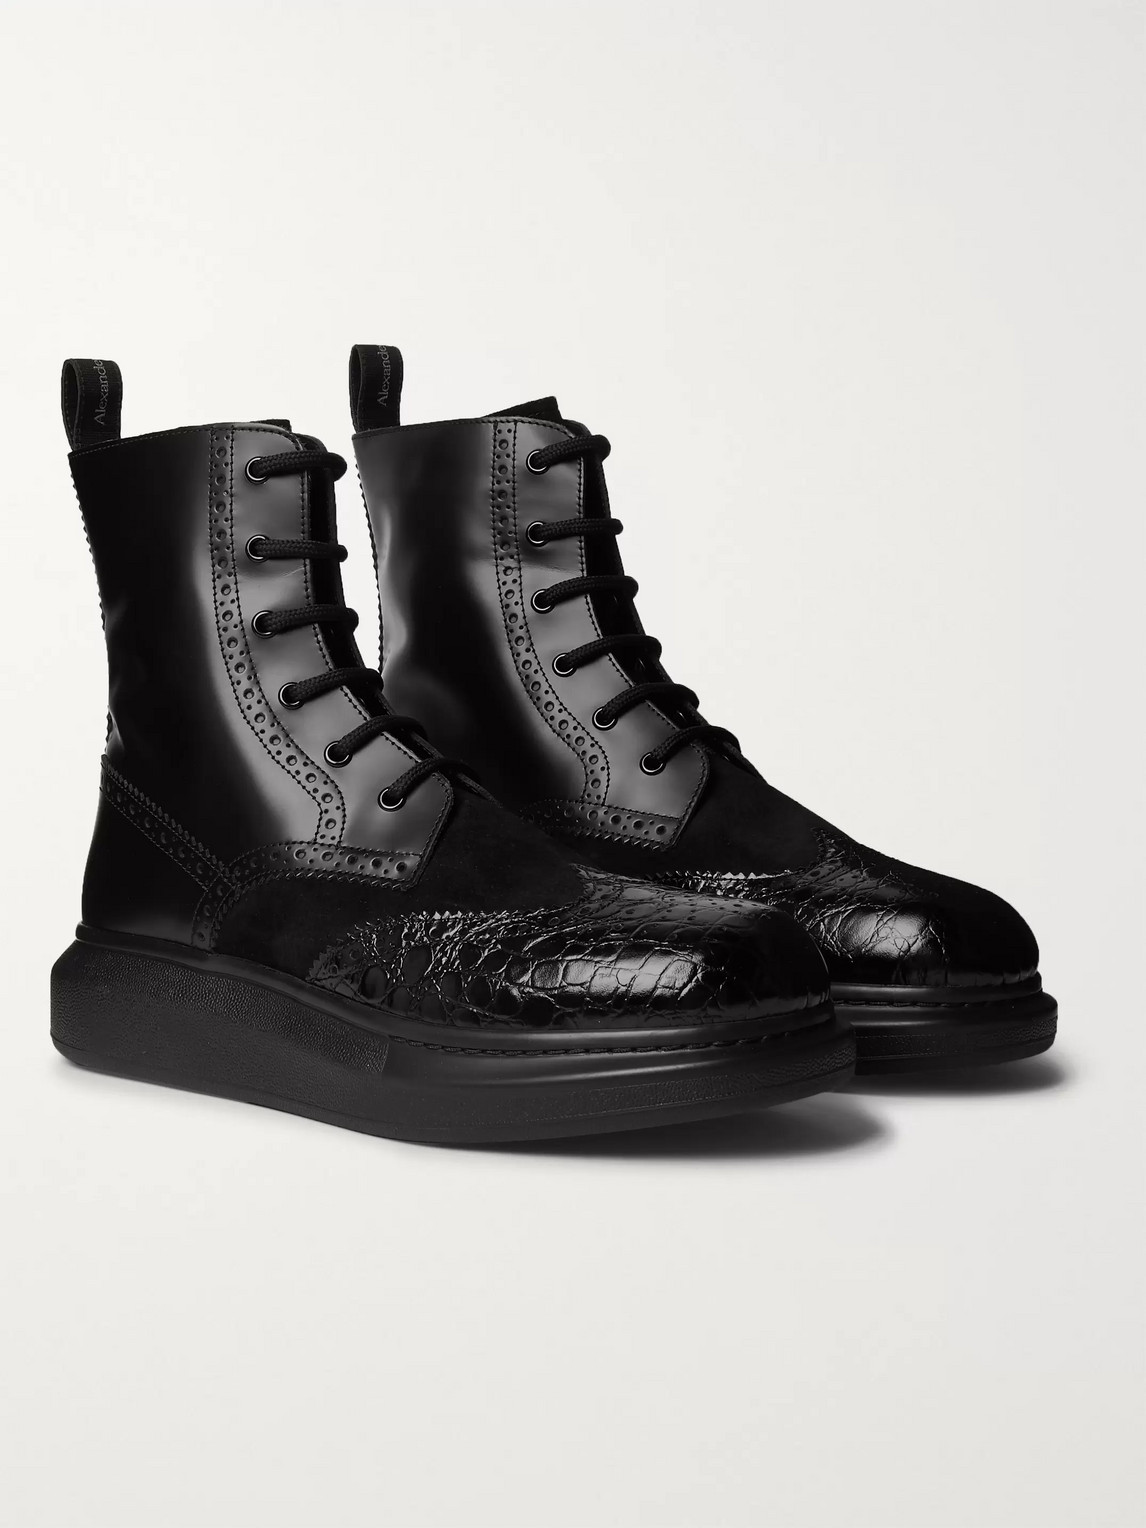 alexander mcqueen - exaggerated-sole suede and patent croc-effect leather boots - men - black